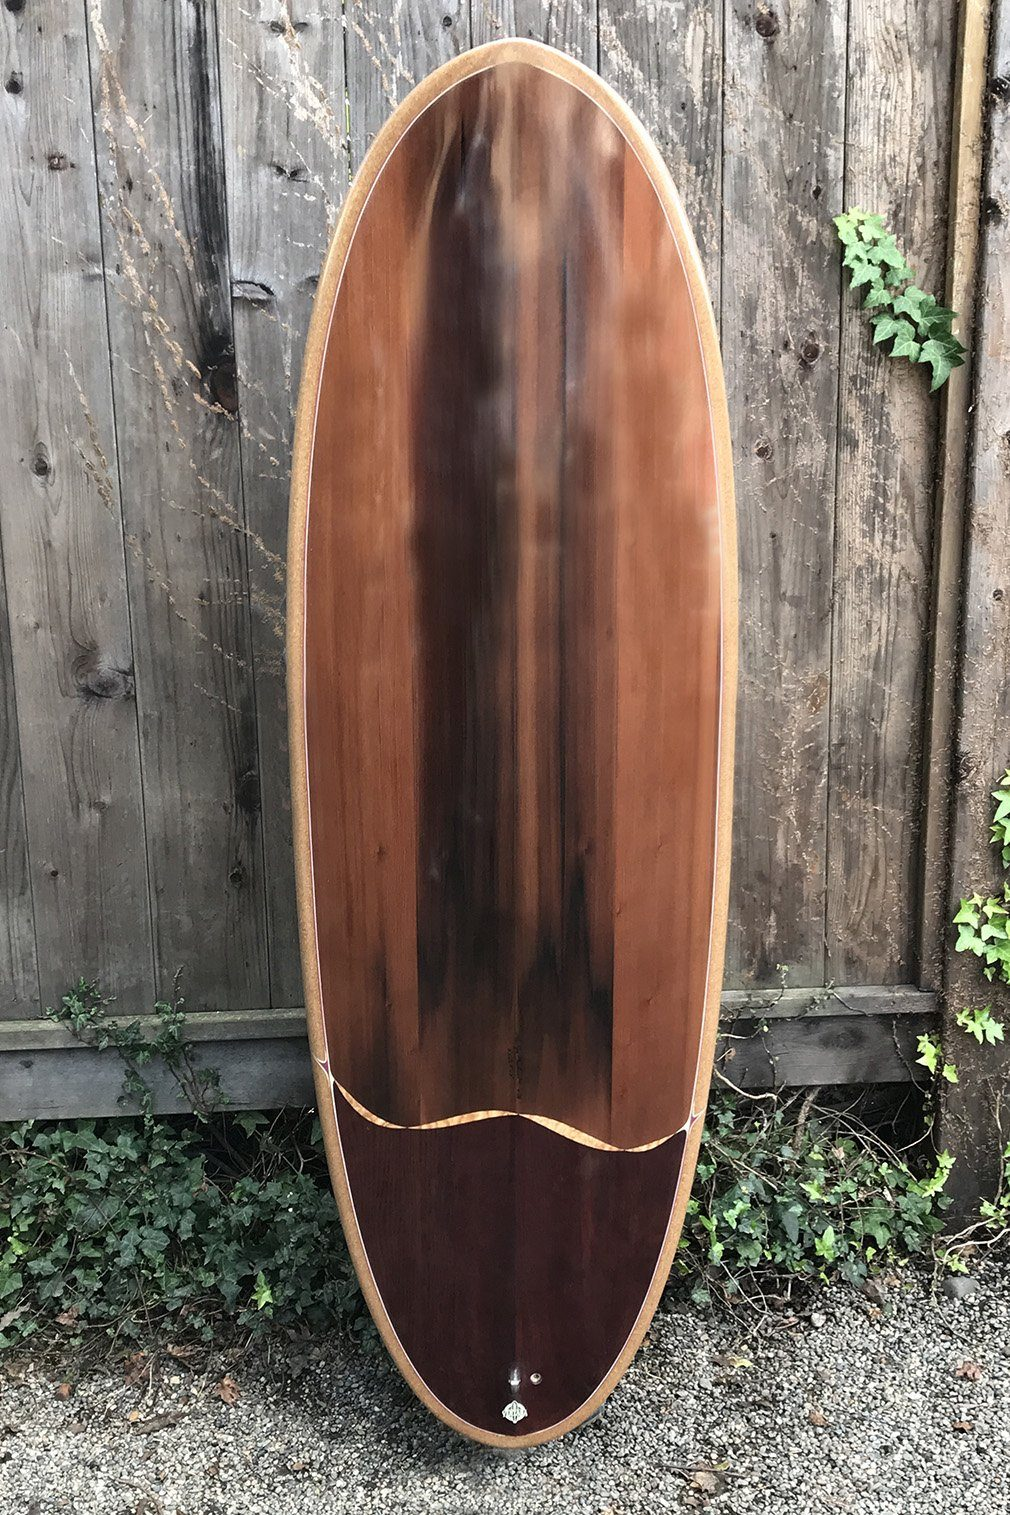 Red Wine in a Hot Tub Hull 6'0""